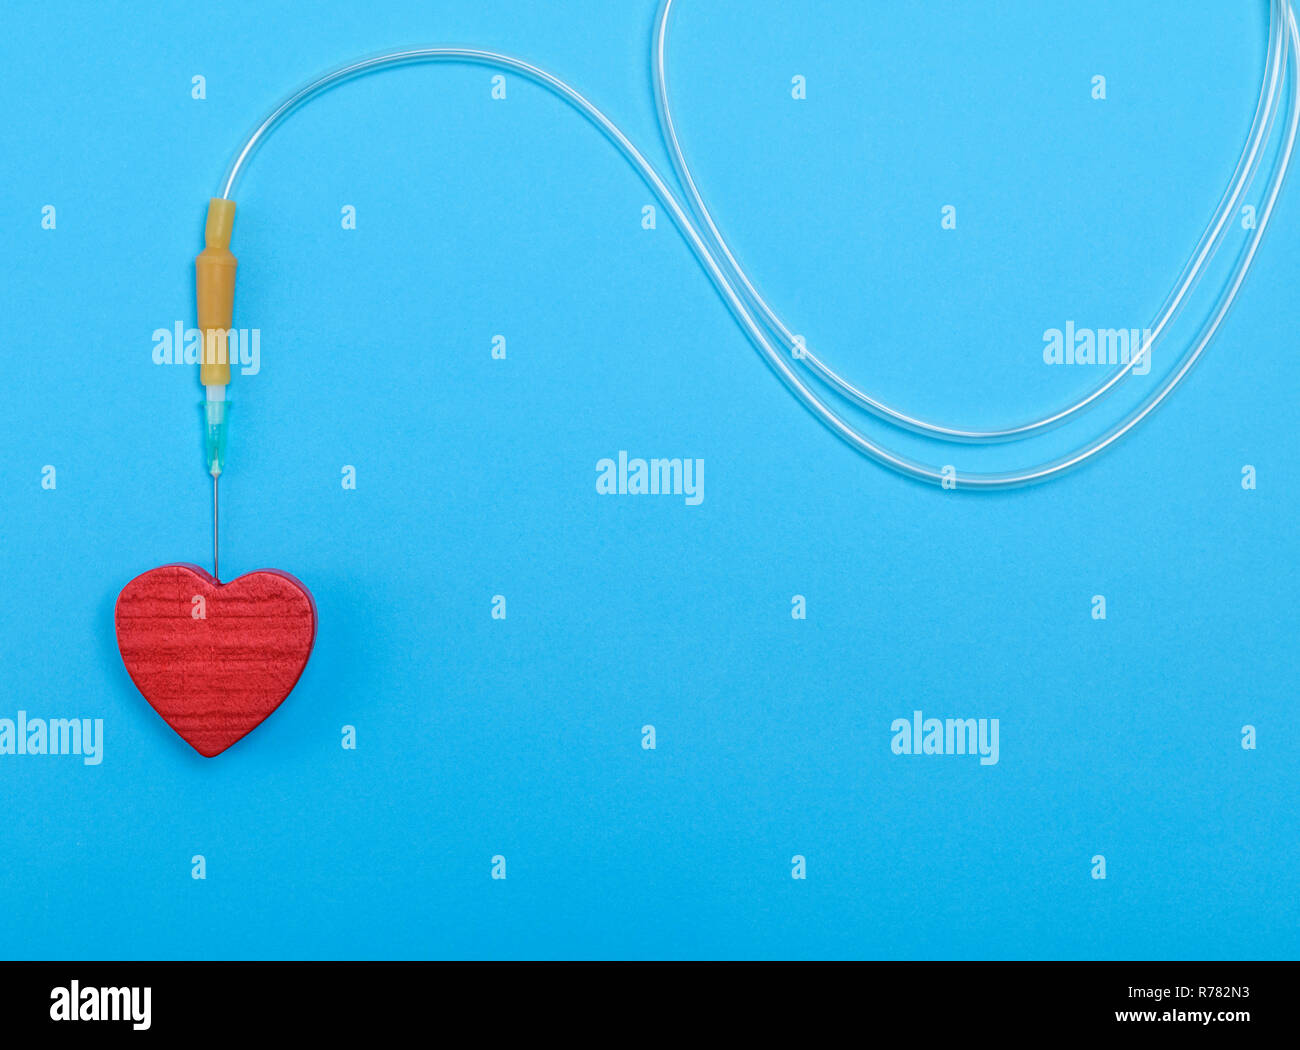 plastic catheter with needle and red heart - Stock Image